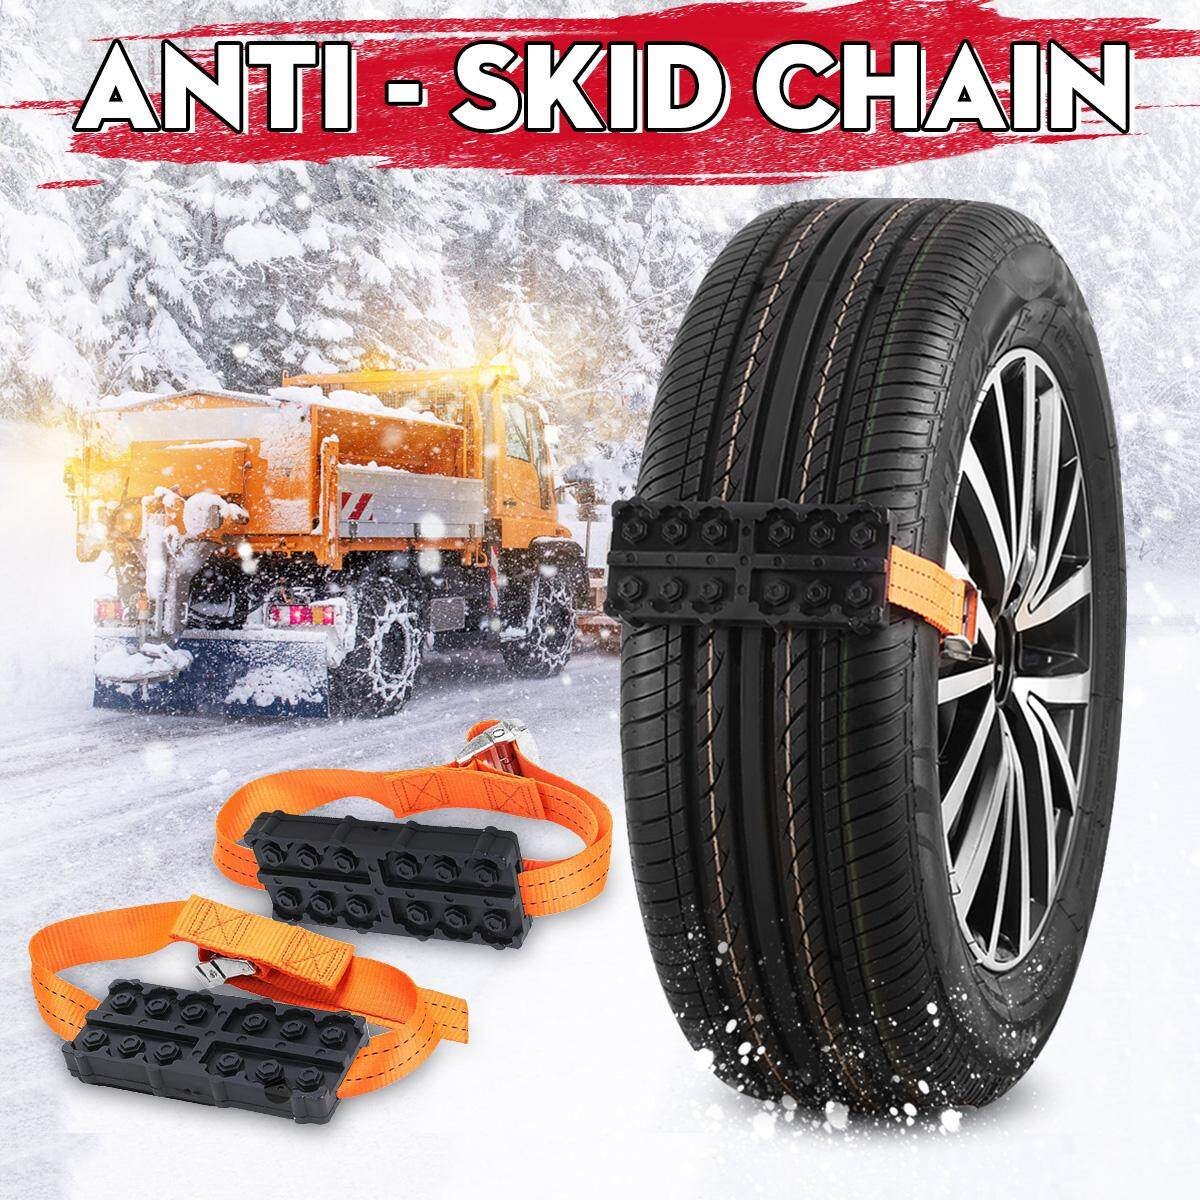 Winter Goods Beautiful Spikes For Tire Plastic Snow Chains Snow Chains For Car Wheels Winter Mud Tires Protection Chain Automobiles Roadway Safety Snow Chains